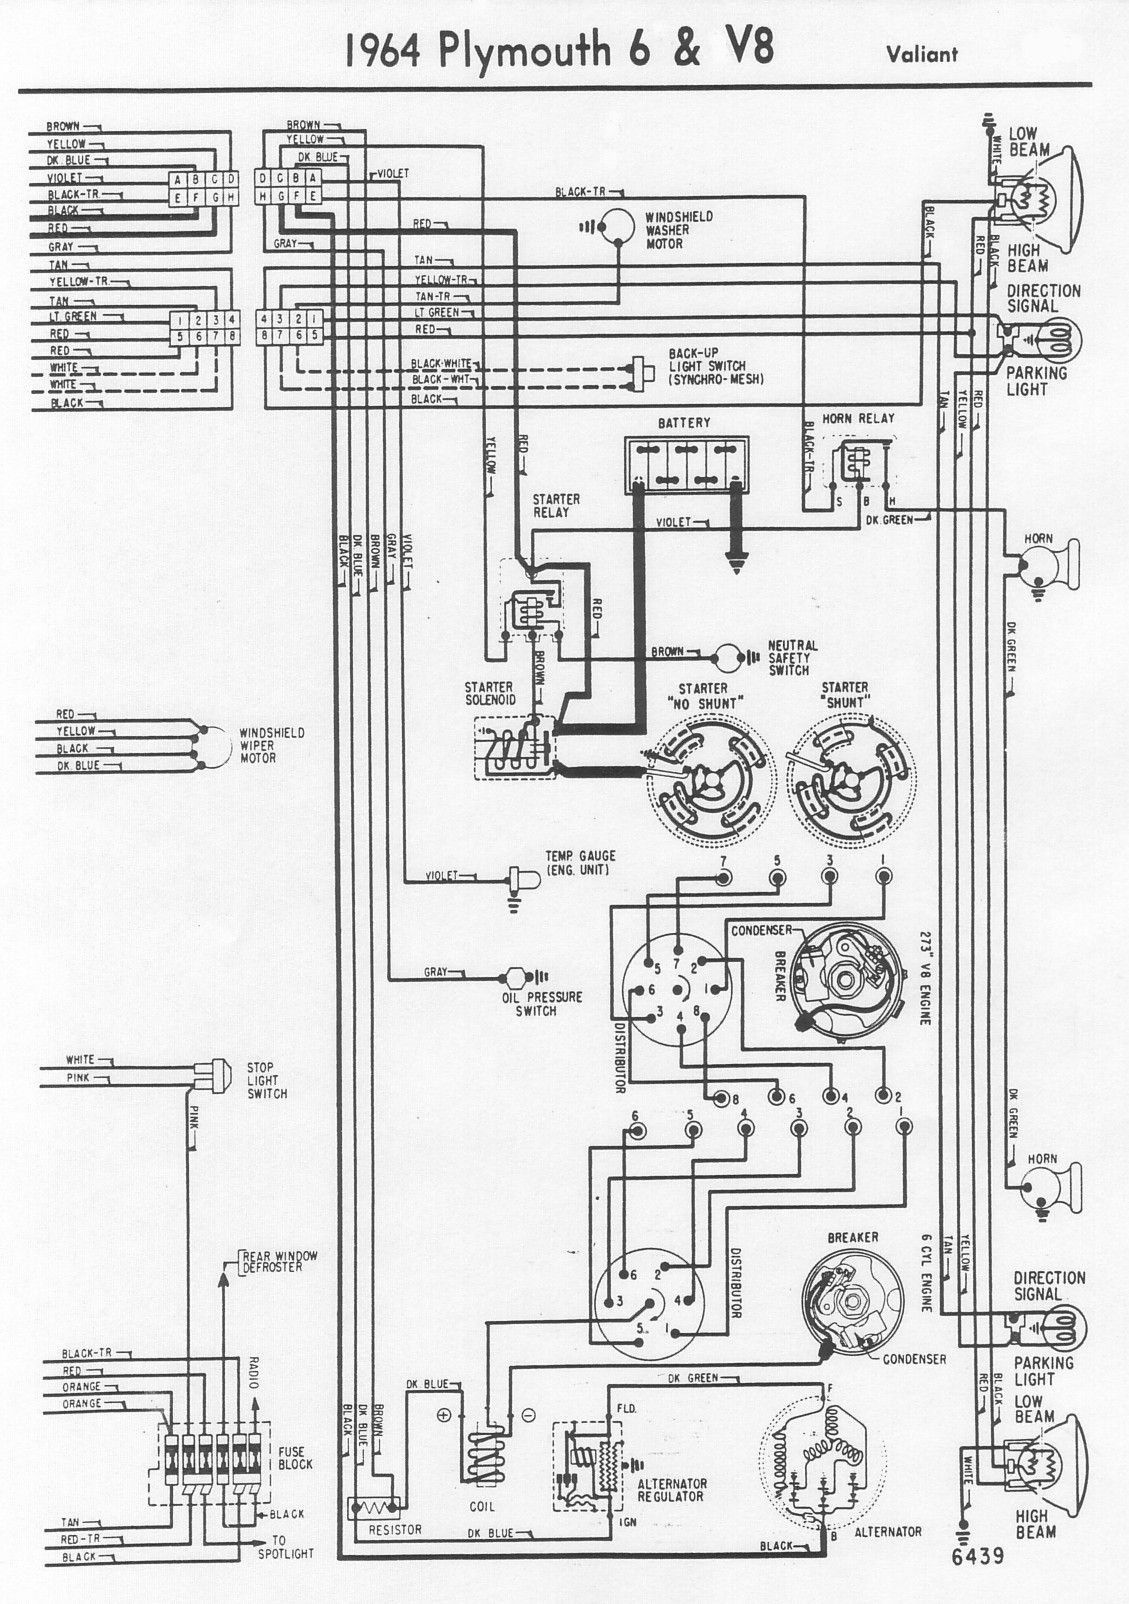 1973 plymouth roadrunner wiring diagram | wiring library wire diagram 1970 plymouth cuda #13